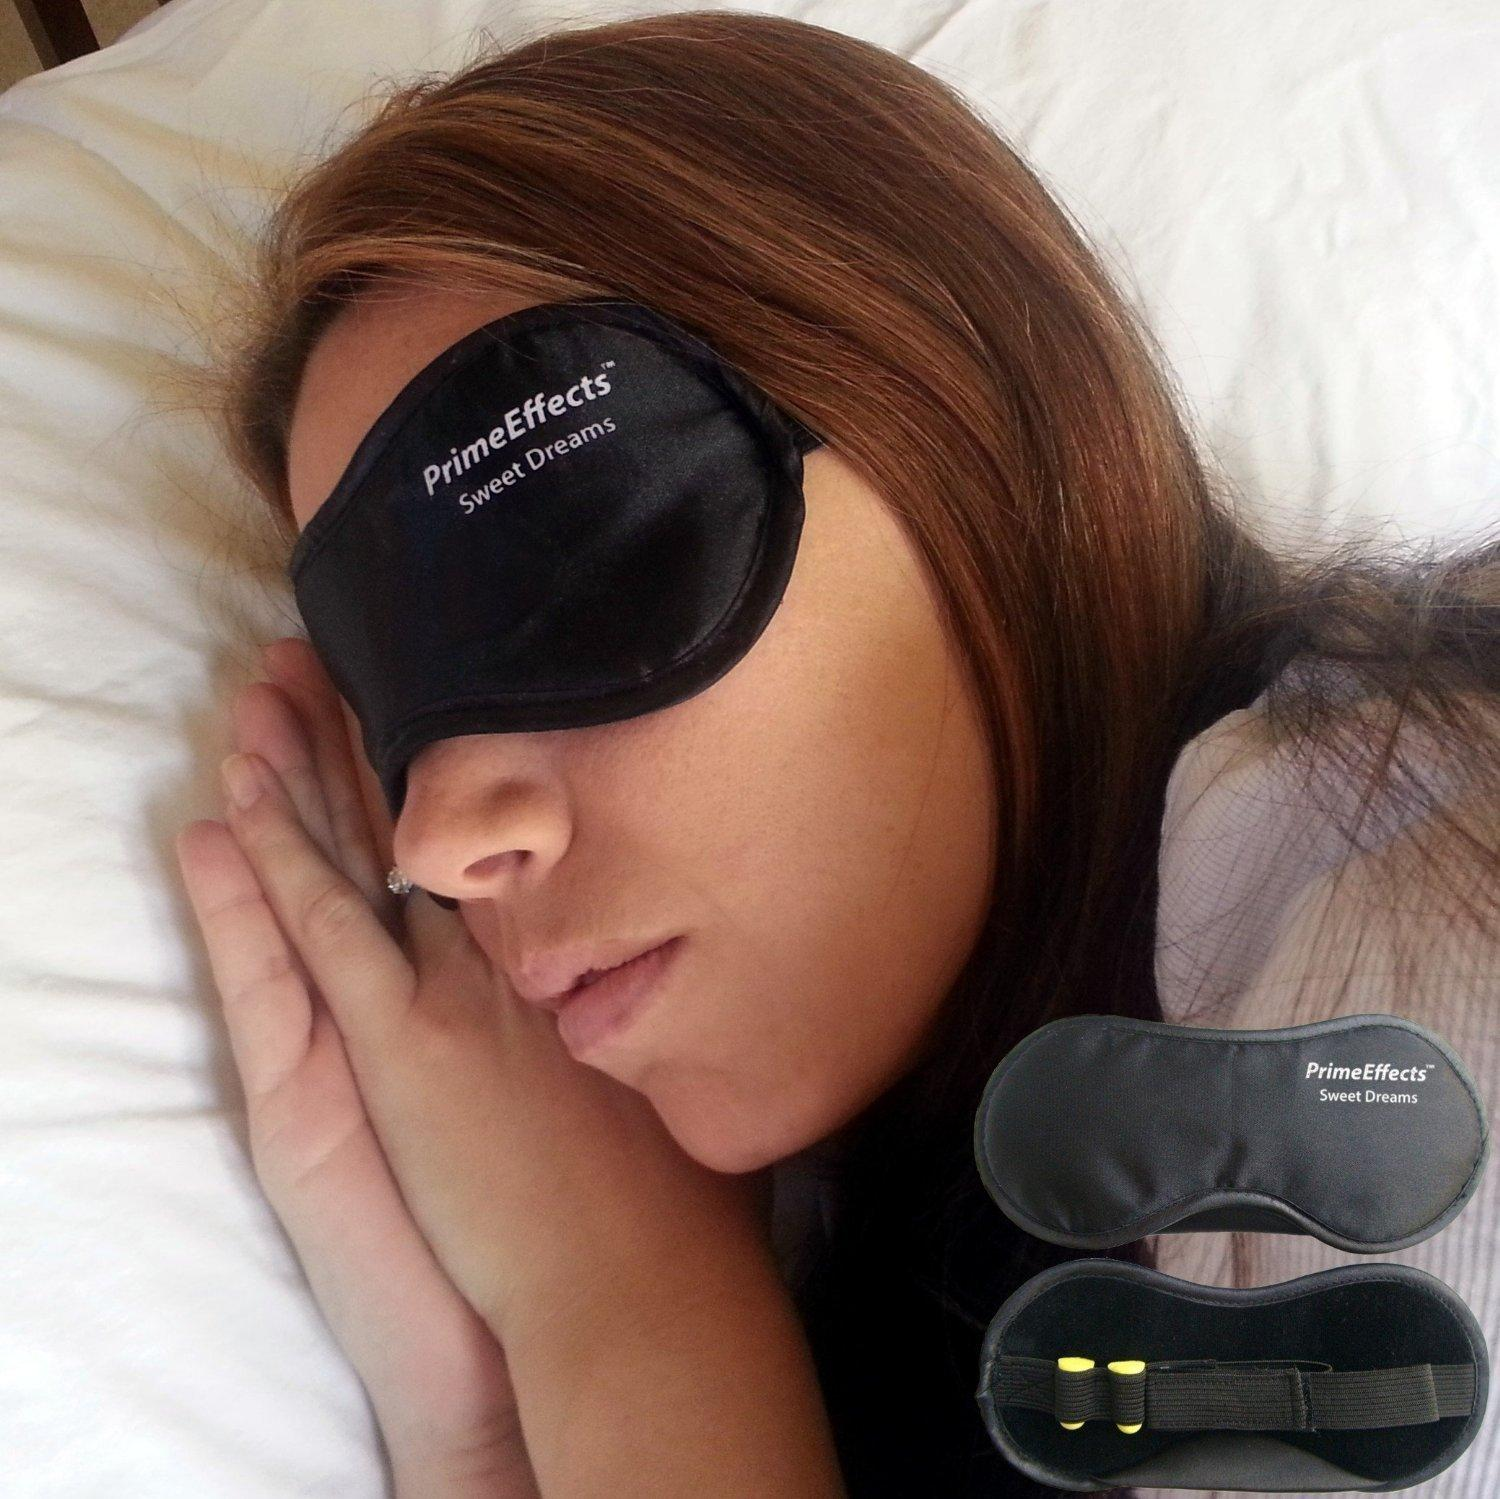 $6.75 PrimeEffects Sweet Dreams Sleep Mask with Ear Plugs